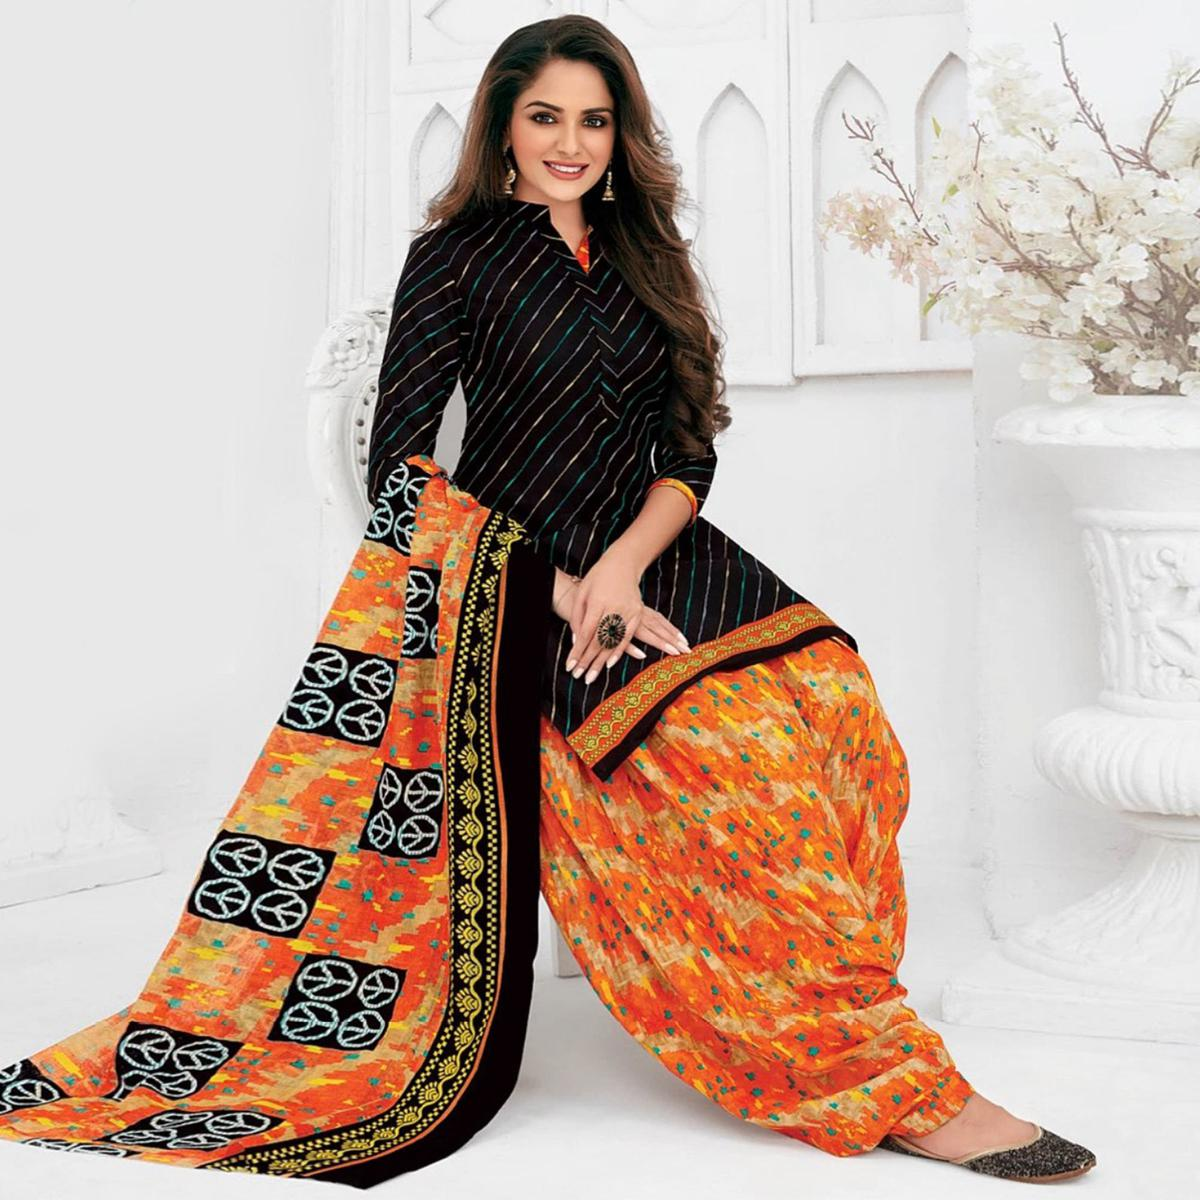 Black Casual Wear Stripes Printed Stitched Cotton Patiyala Suit With Dupatta